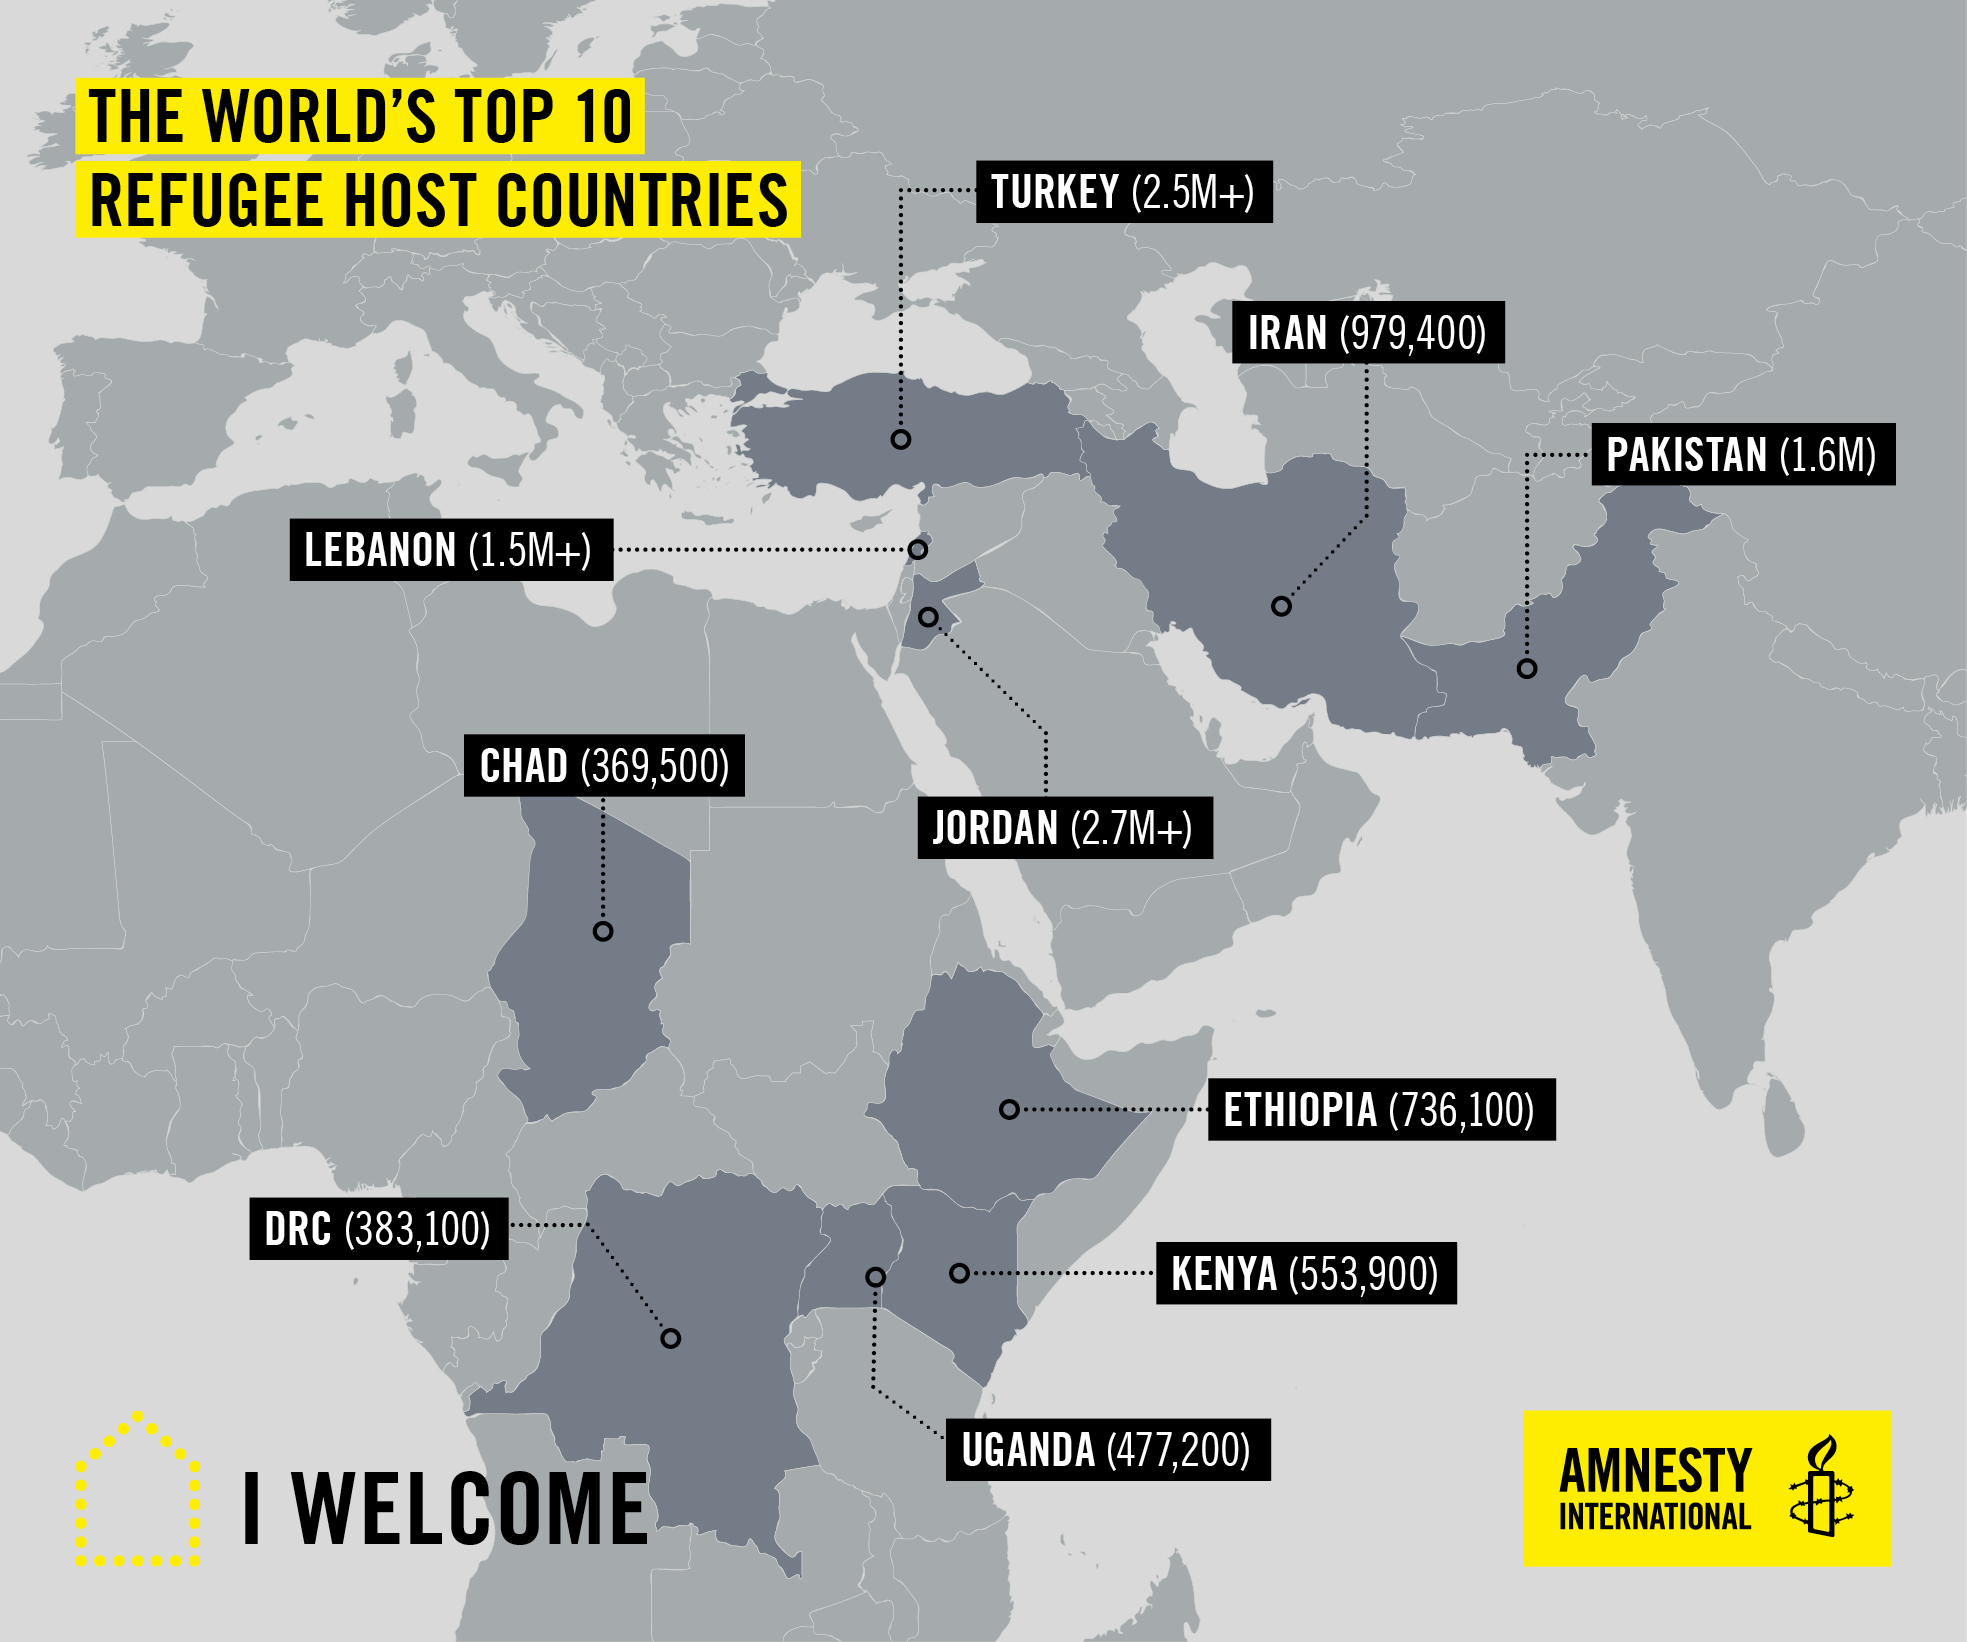 """Plakate A3 """"THE REFUGEE CRISIS IN NUMBERS"""" und """"THE WORLD'S TOP 10 REFUGEE HOST COUNTRIES"""" zur Ausleihe"""